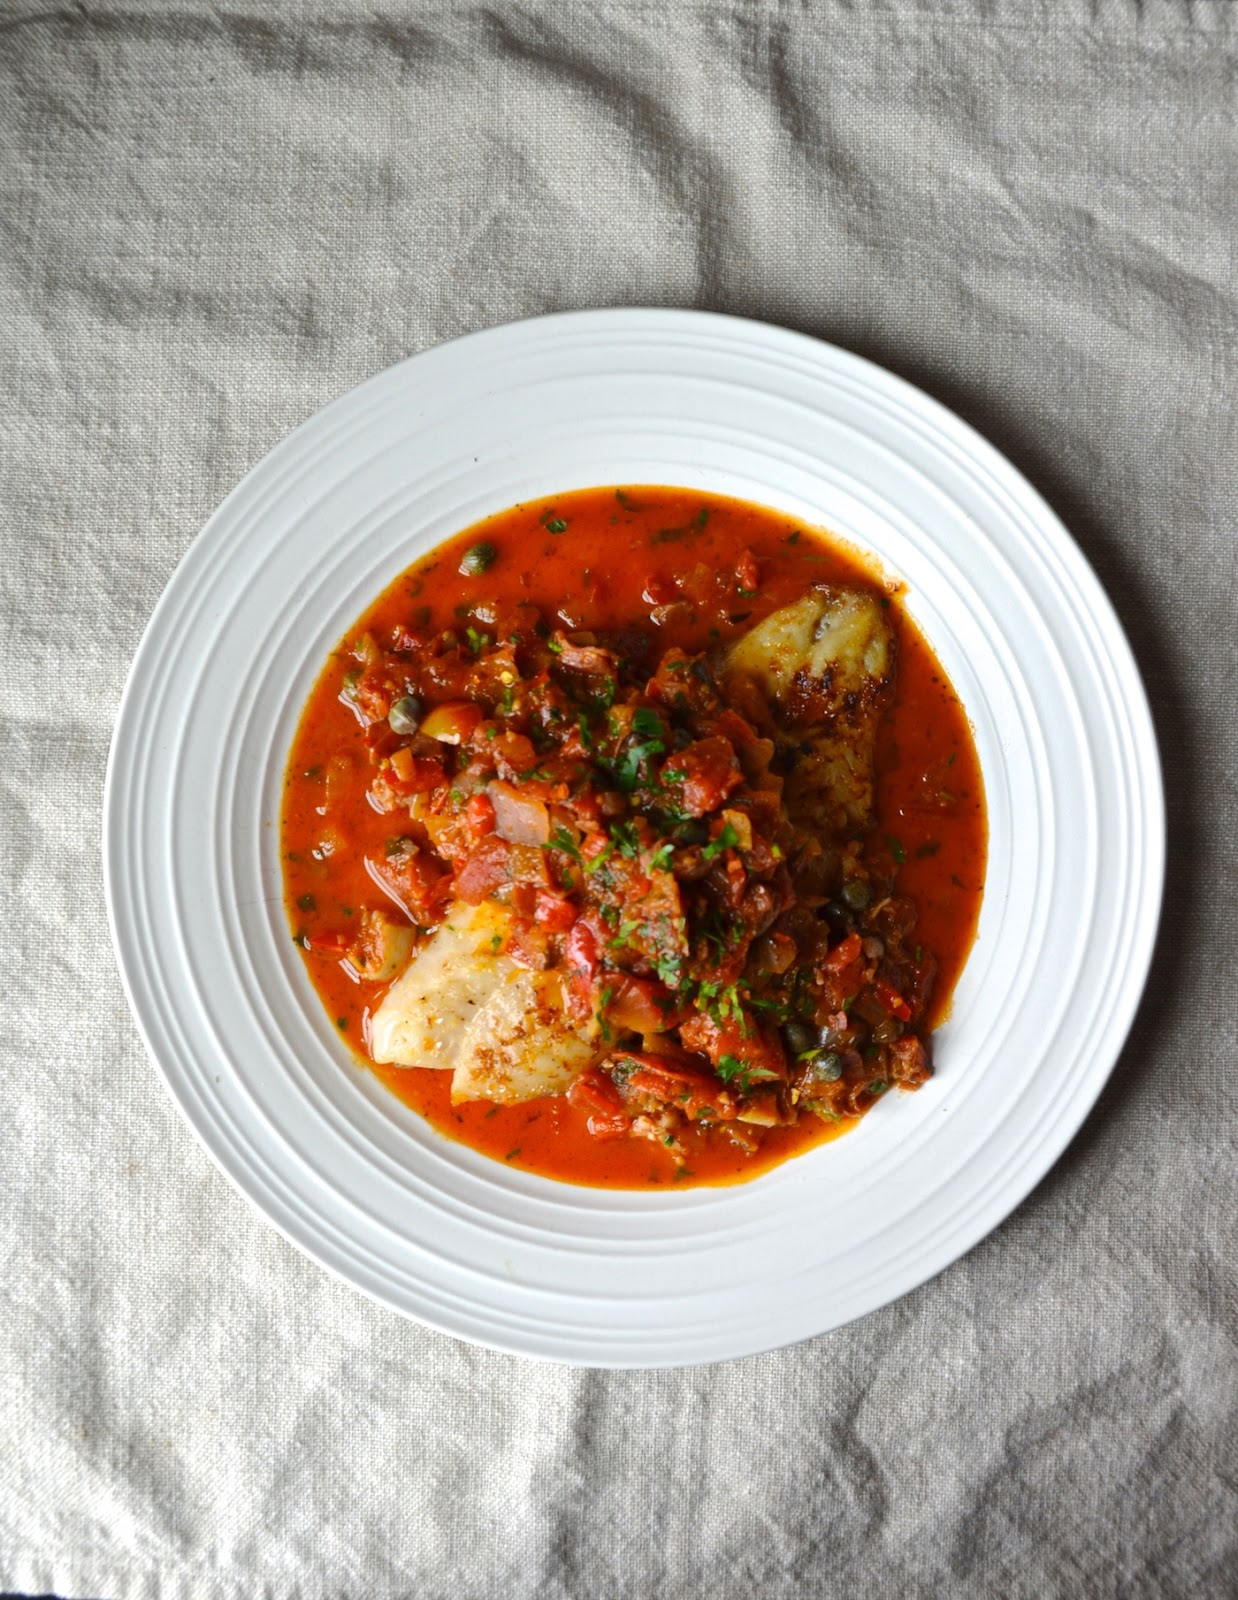 Broiled Fish with Rustic Mediterranean Tomato, Onion & Caper Sauce